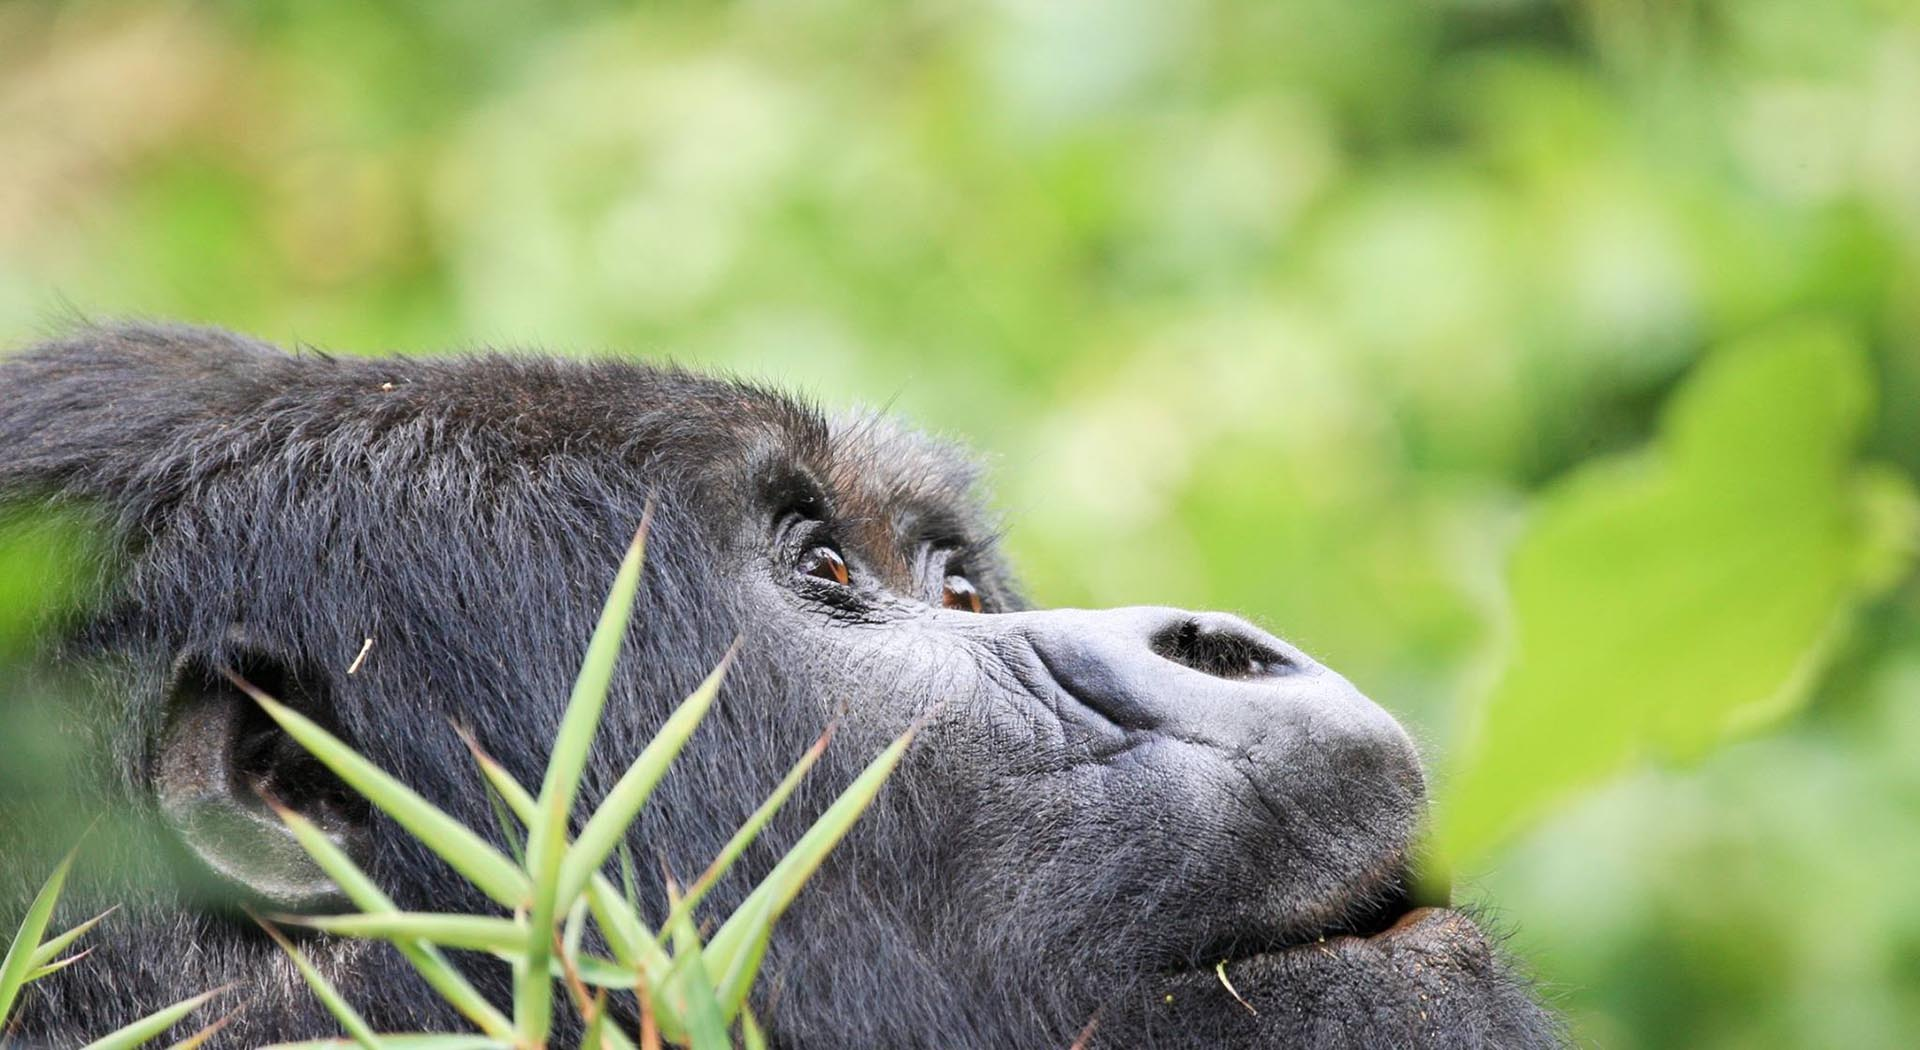 Mark Timko, Ponder Mountain Gorilla, Rwanda, photo on metal